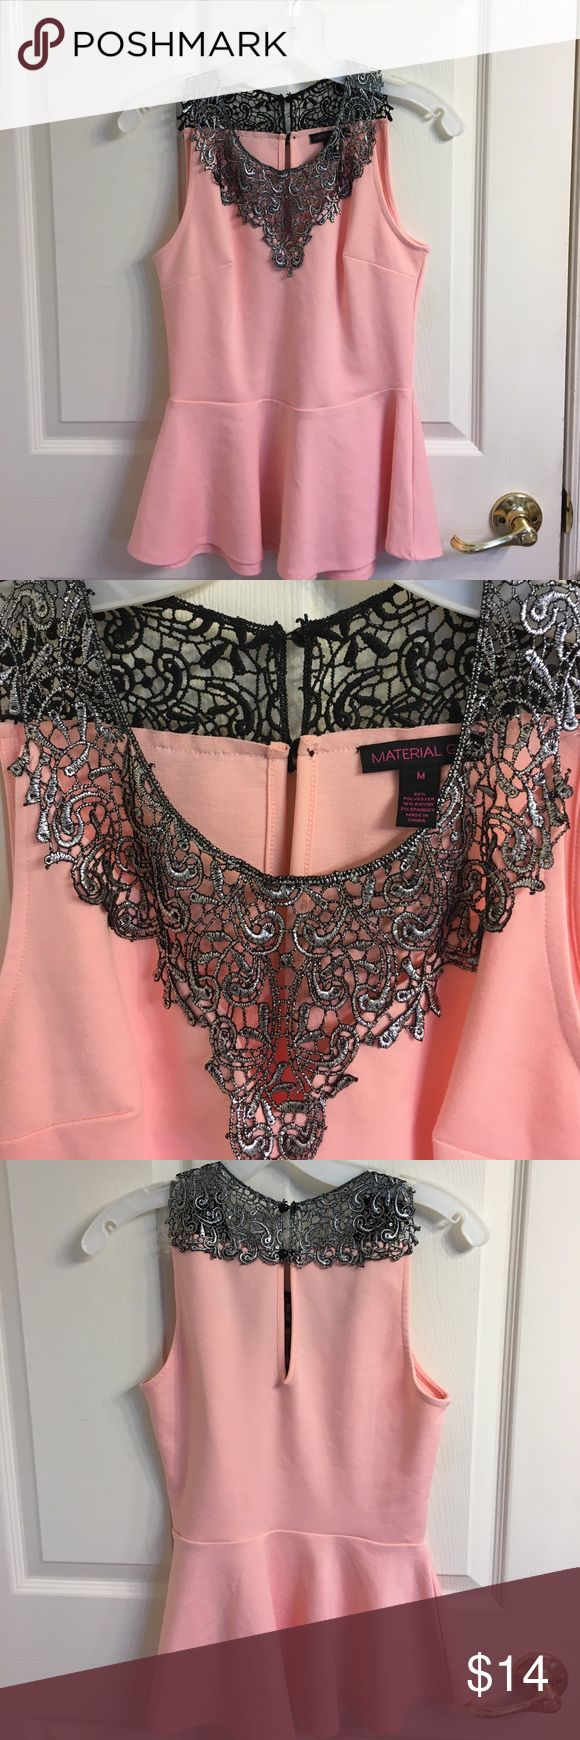 Material Girl Peplum Top Material Girl pink peplum top with black/silver lace. It has only been worn once and has no stains/tears. Size Medium. Material Girl Tops